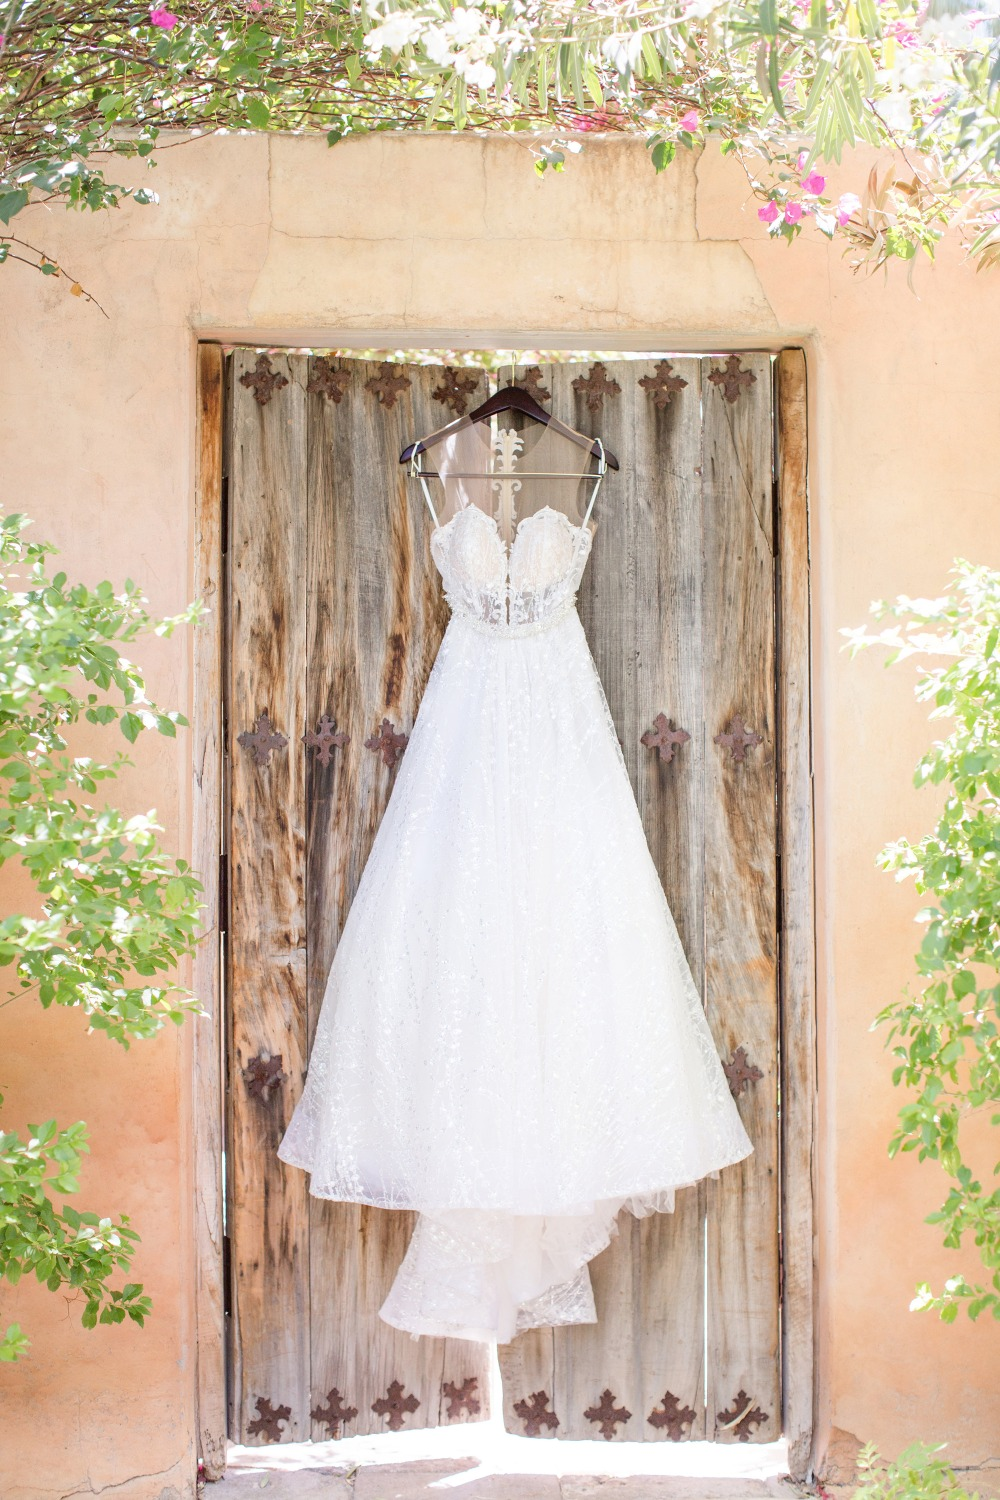 Dreamy Garden Wedding Straight Out of a Fairytale